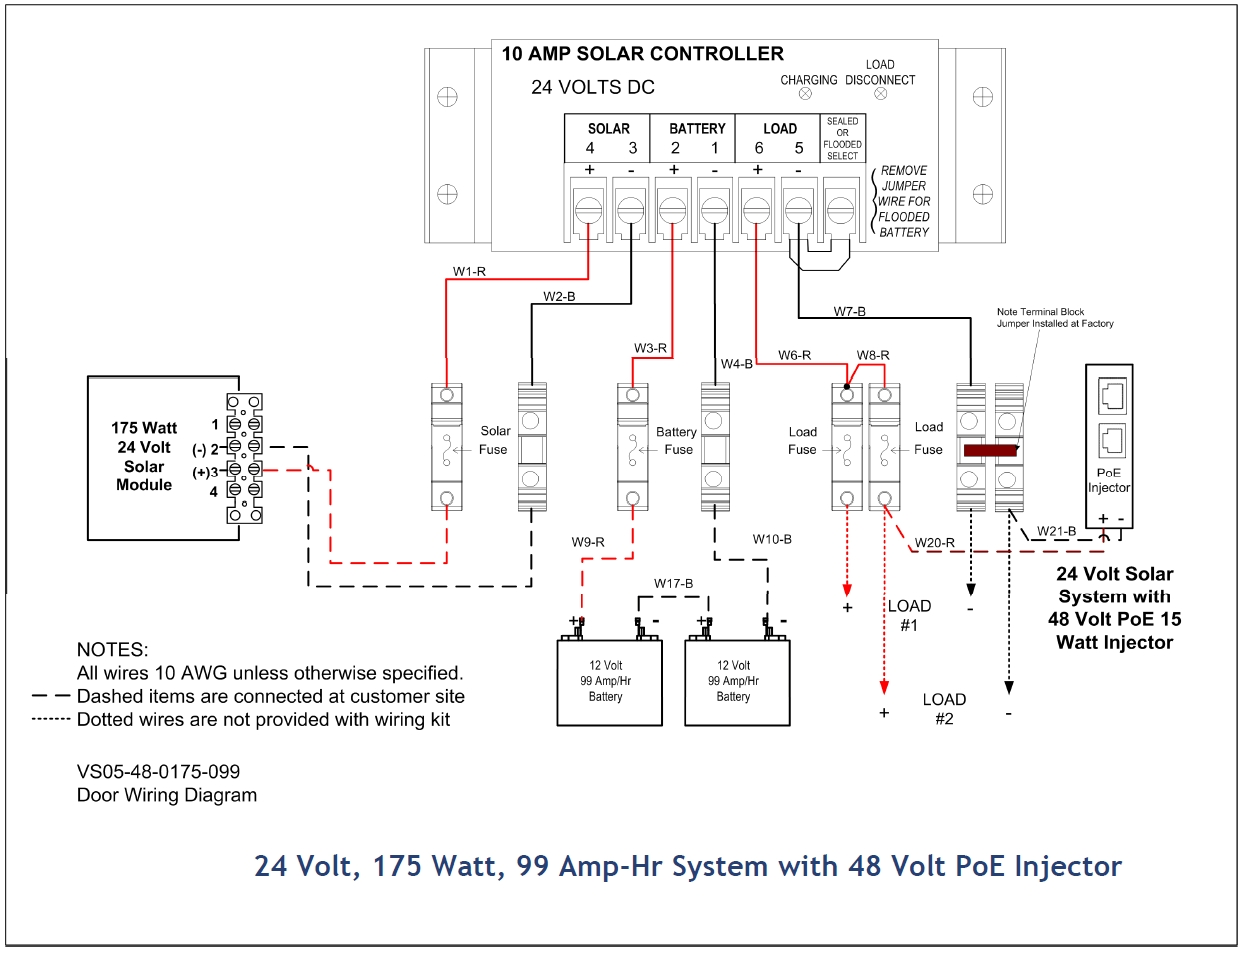 temperature controller wiring diagram Collection-full list of solar system wiring installation circuit diagram rh mozaw Sprinkler System Wiring Diagram Temperature Controller Wiring Diagram 6-h